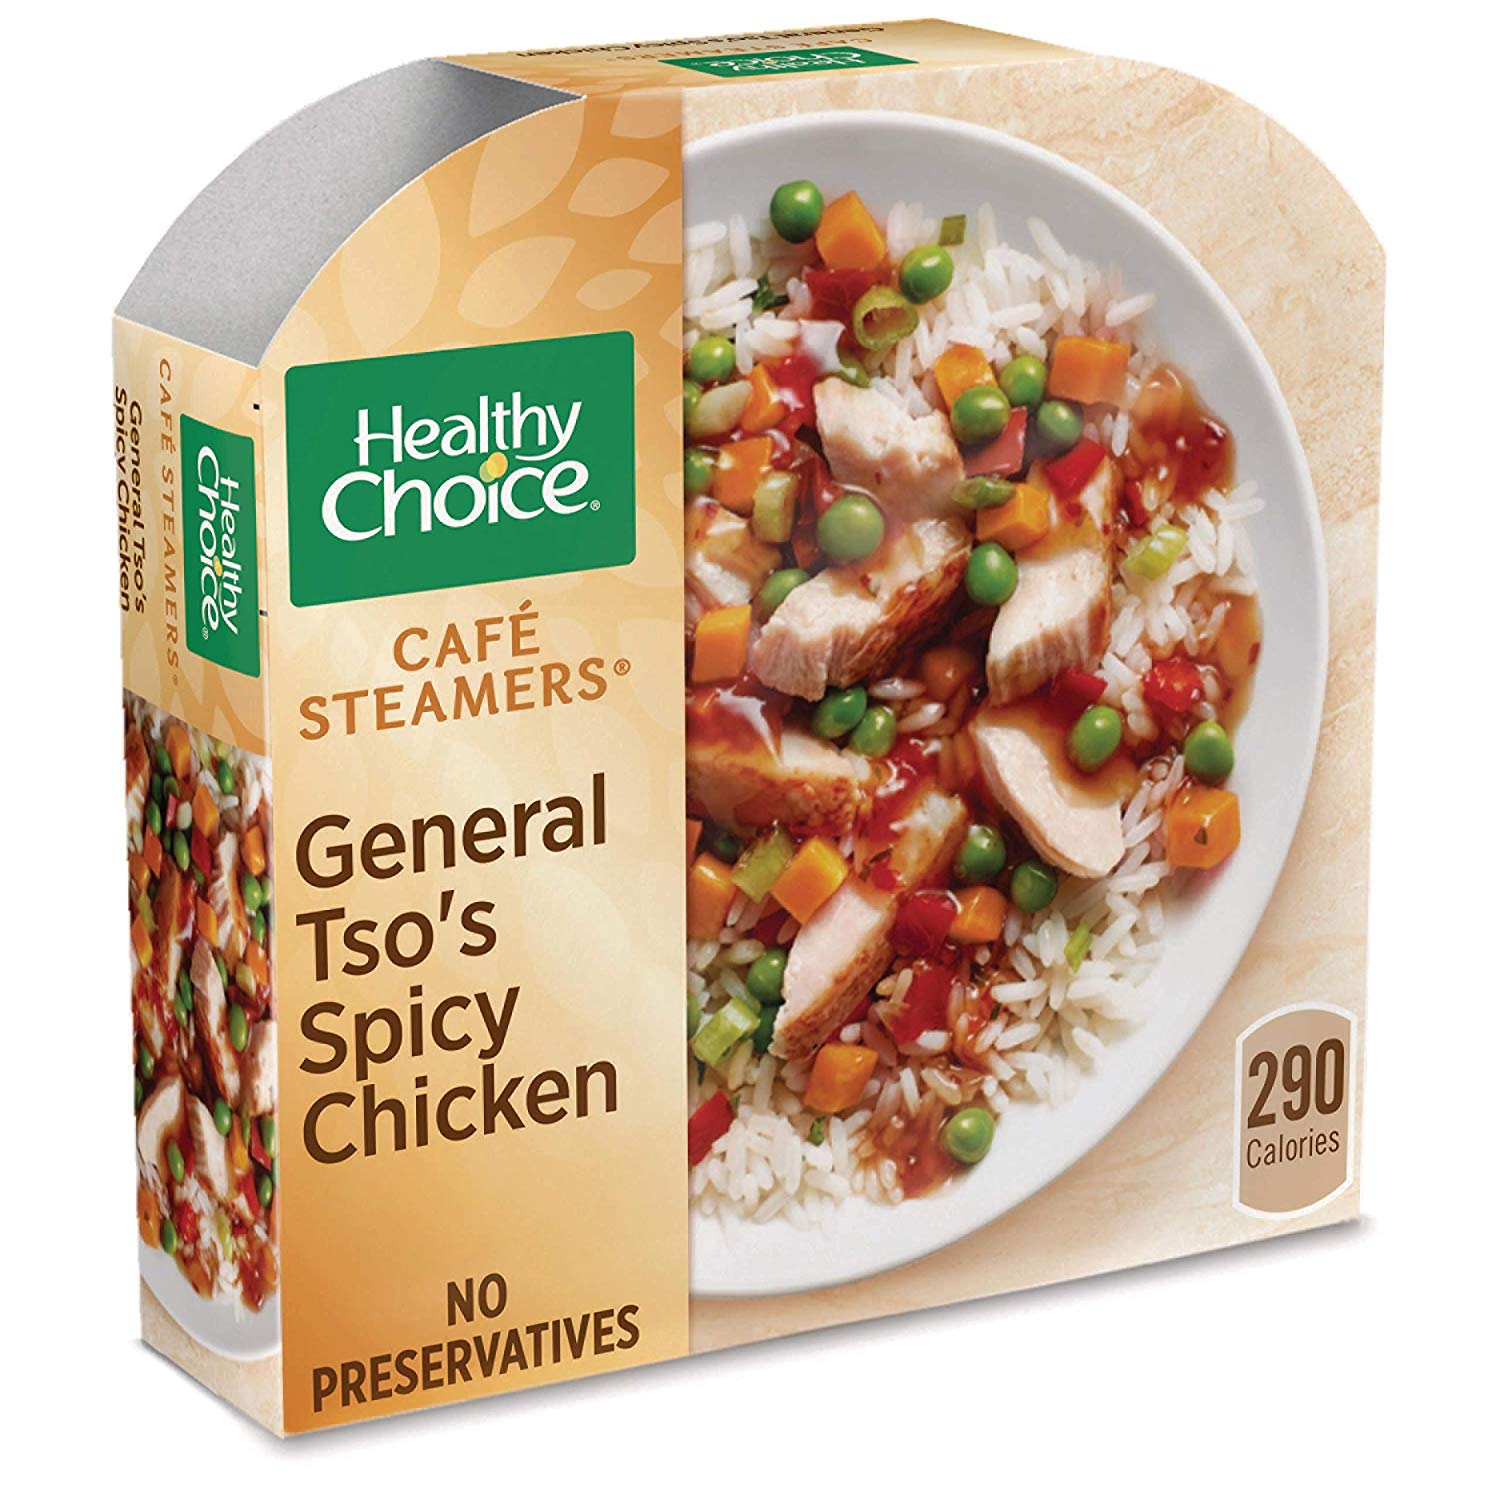 Healthy Choice Cafe Steamers Frozen Dinner General Tso's Spicy Chicken